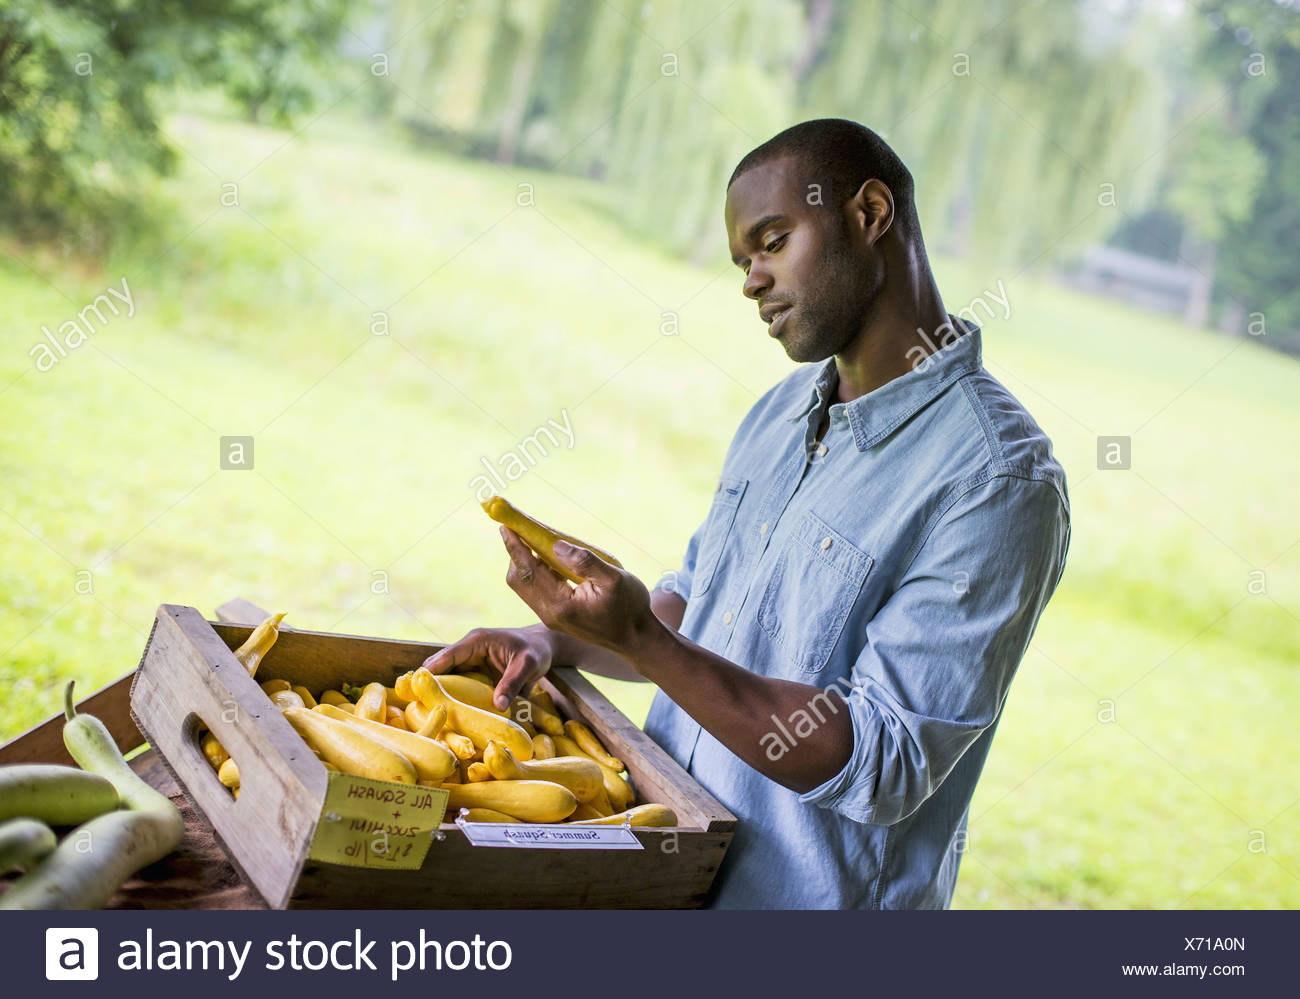 An organic fruit and vegetable farm. A man sorting vegetables. - Stock Image